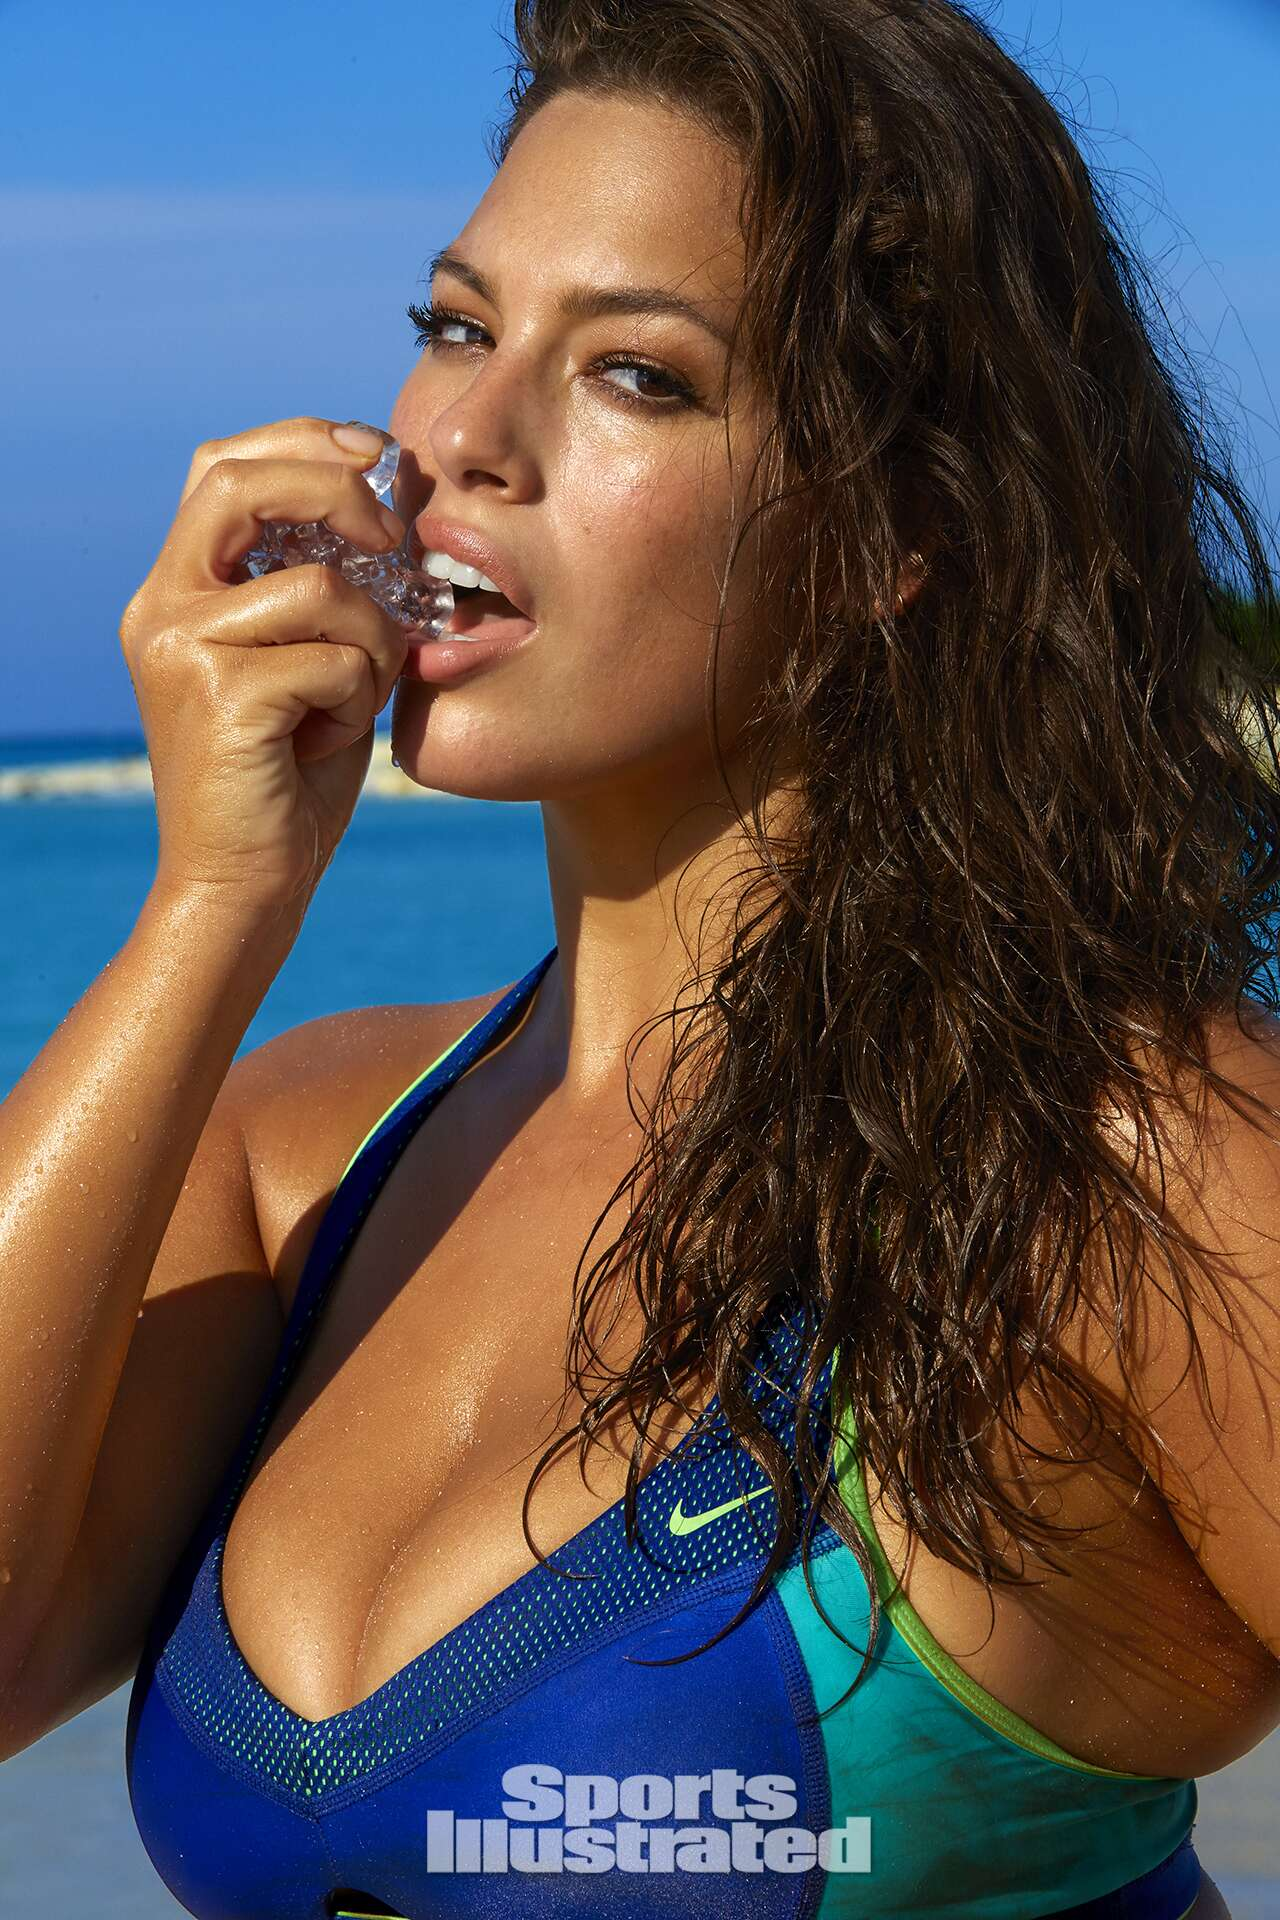 Ashley Graham was photographed by James Macari in Turks & Caicos. Swimsuit by Nike.